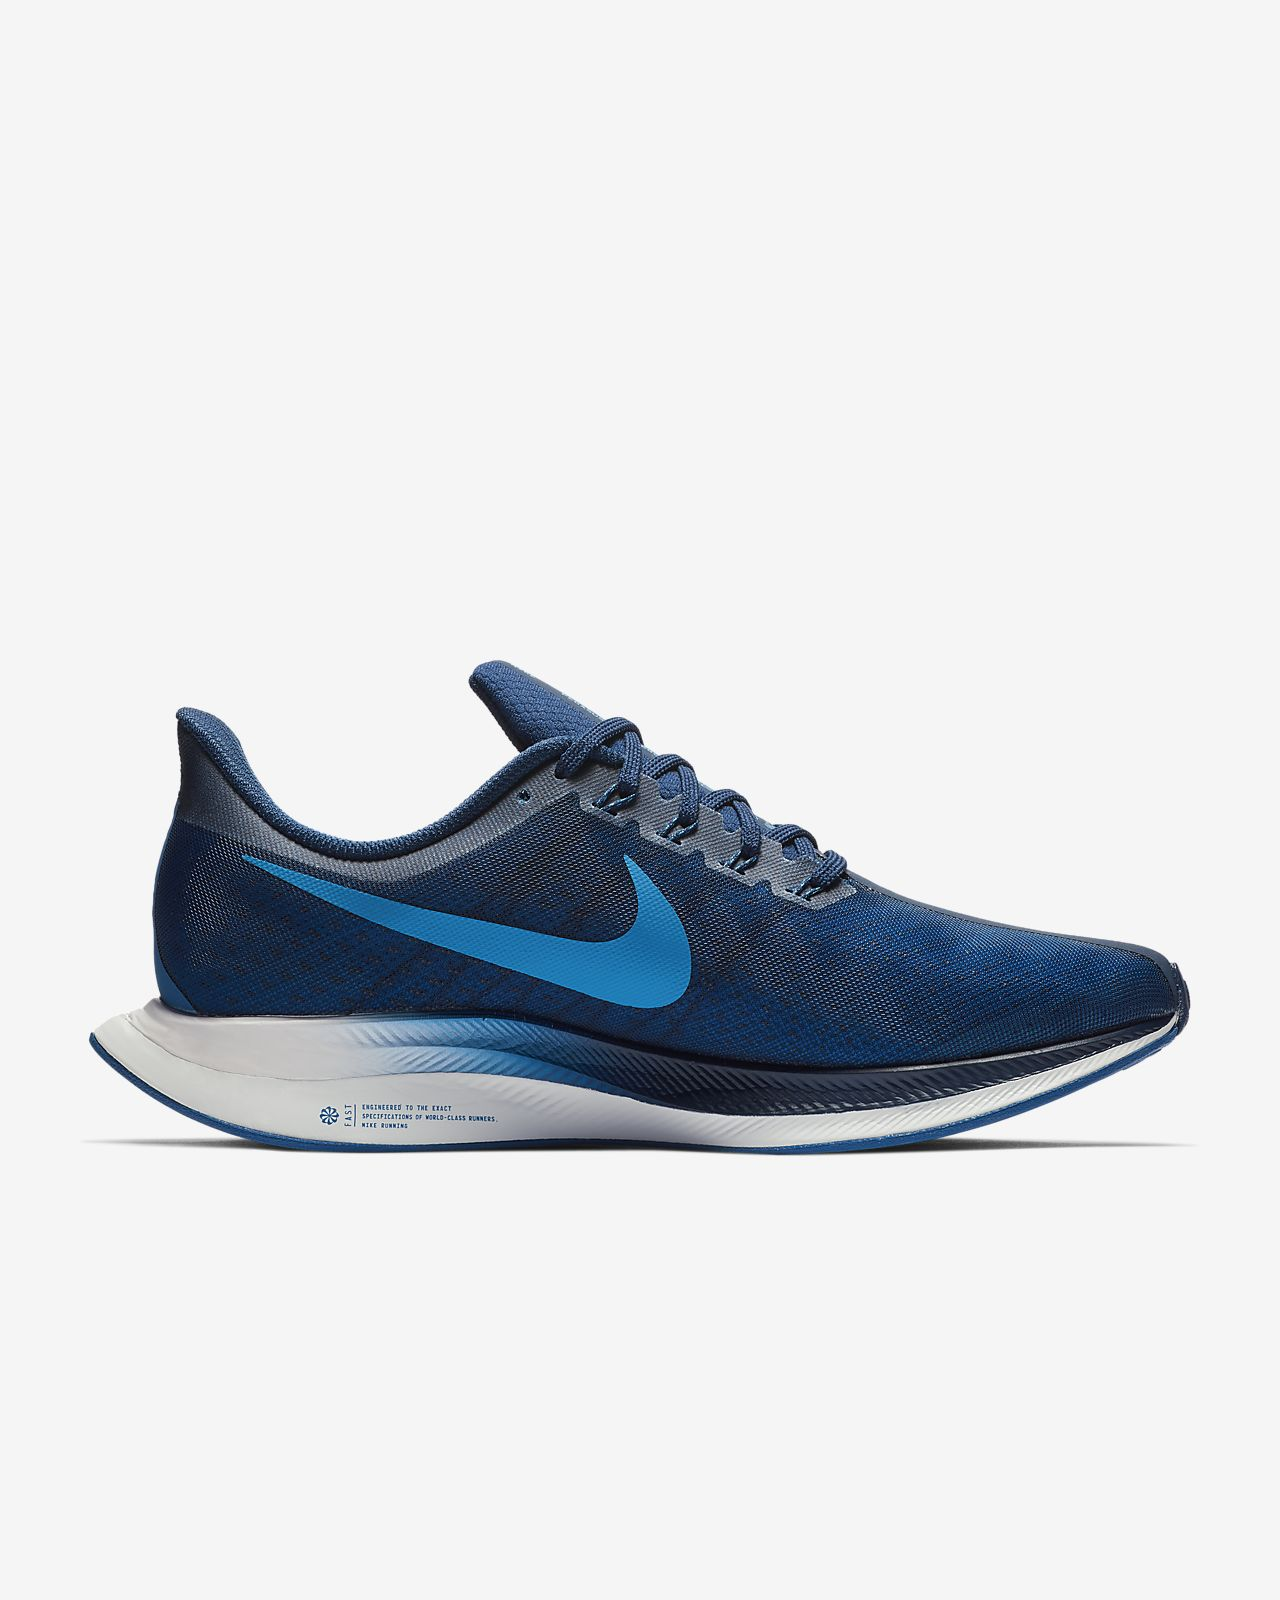 539e1f6967cd8b Nike Zoom Pegasus Turbo Men s Running Shoe. Nike.com VN